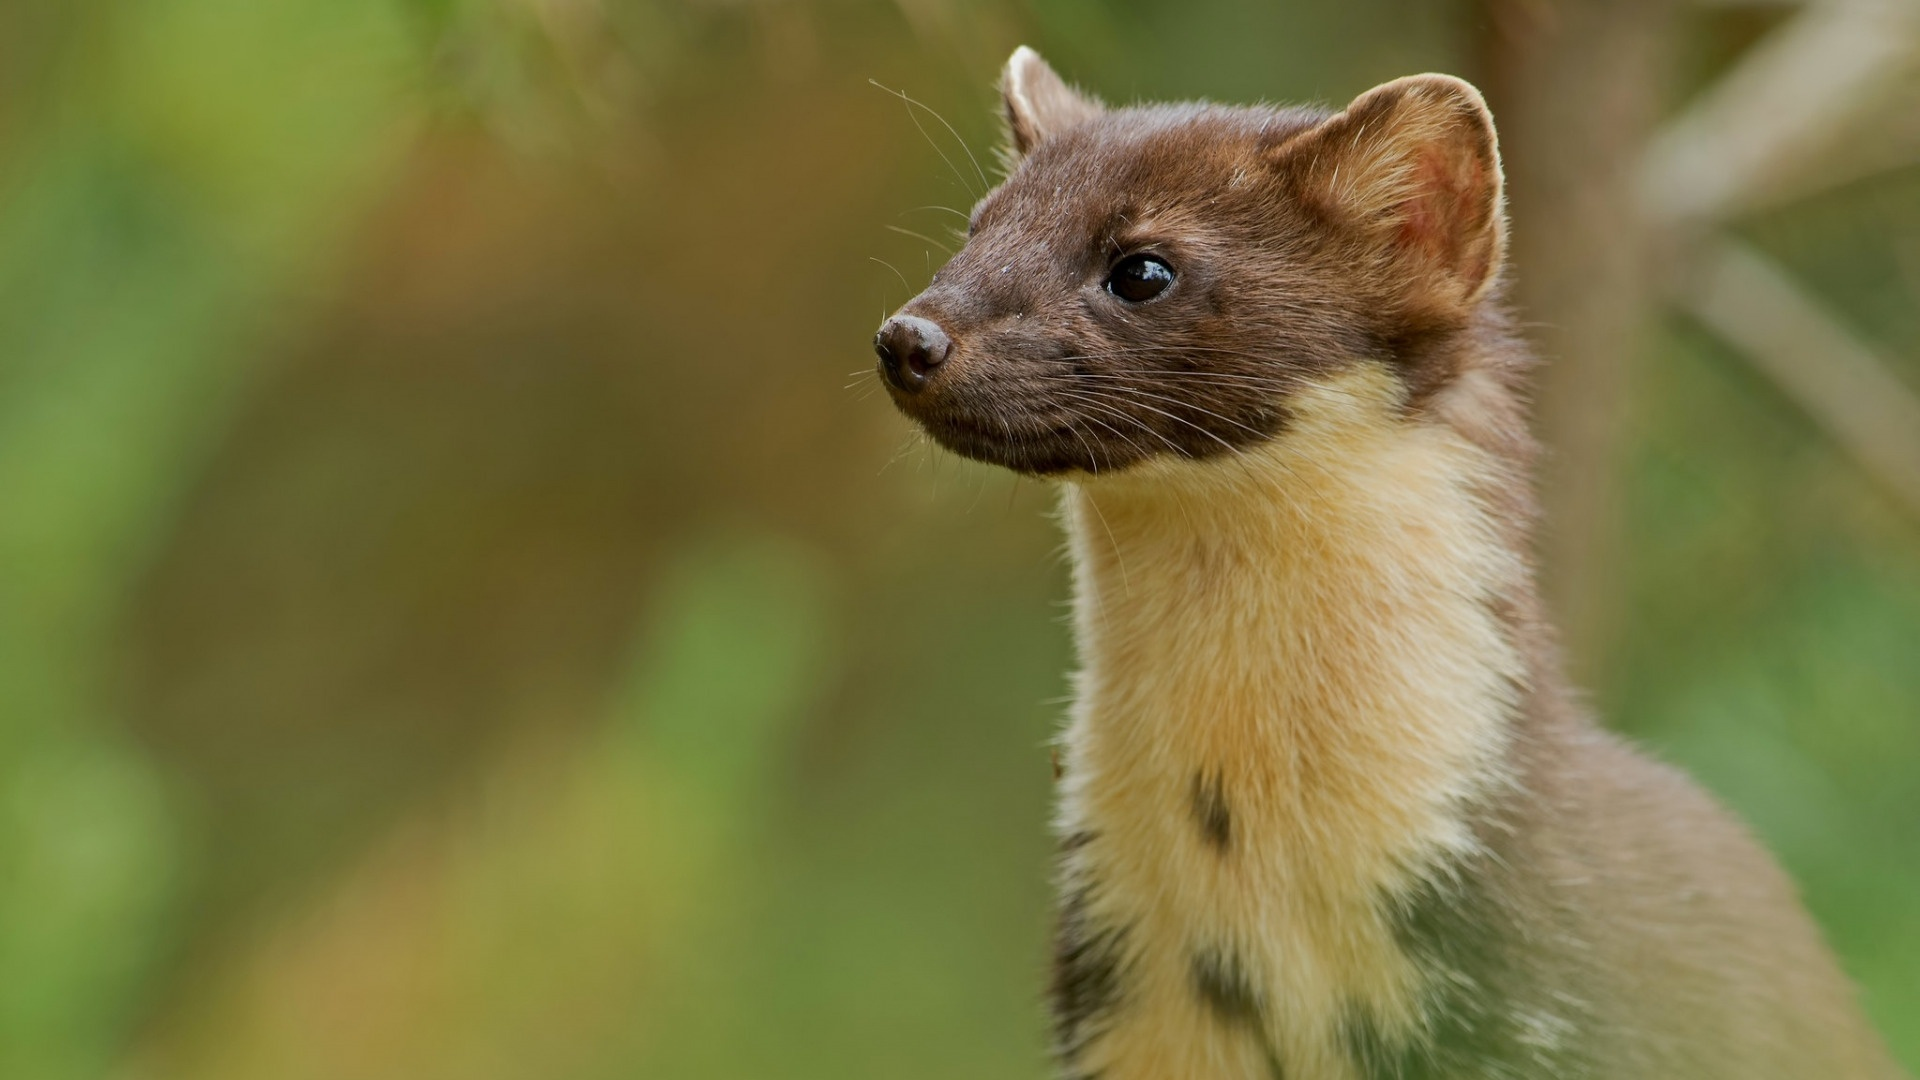 Marten wallpaper for desktop